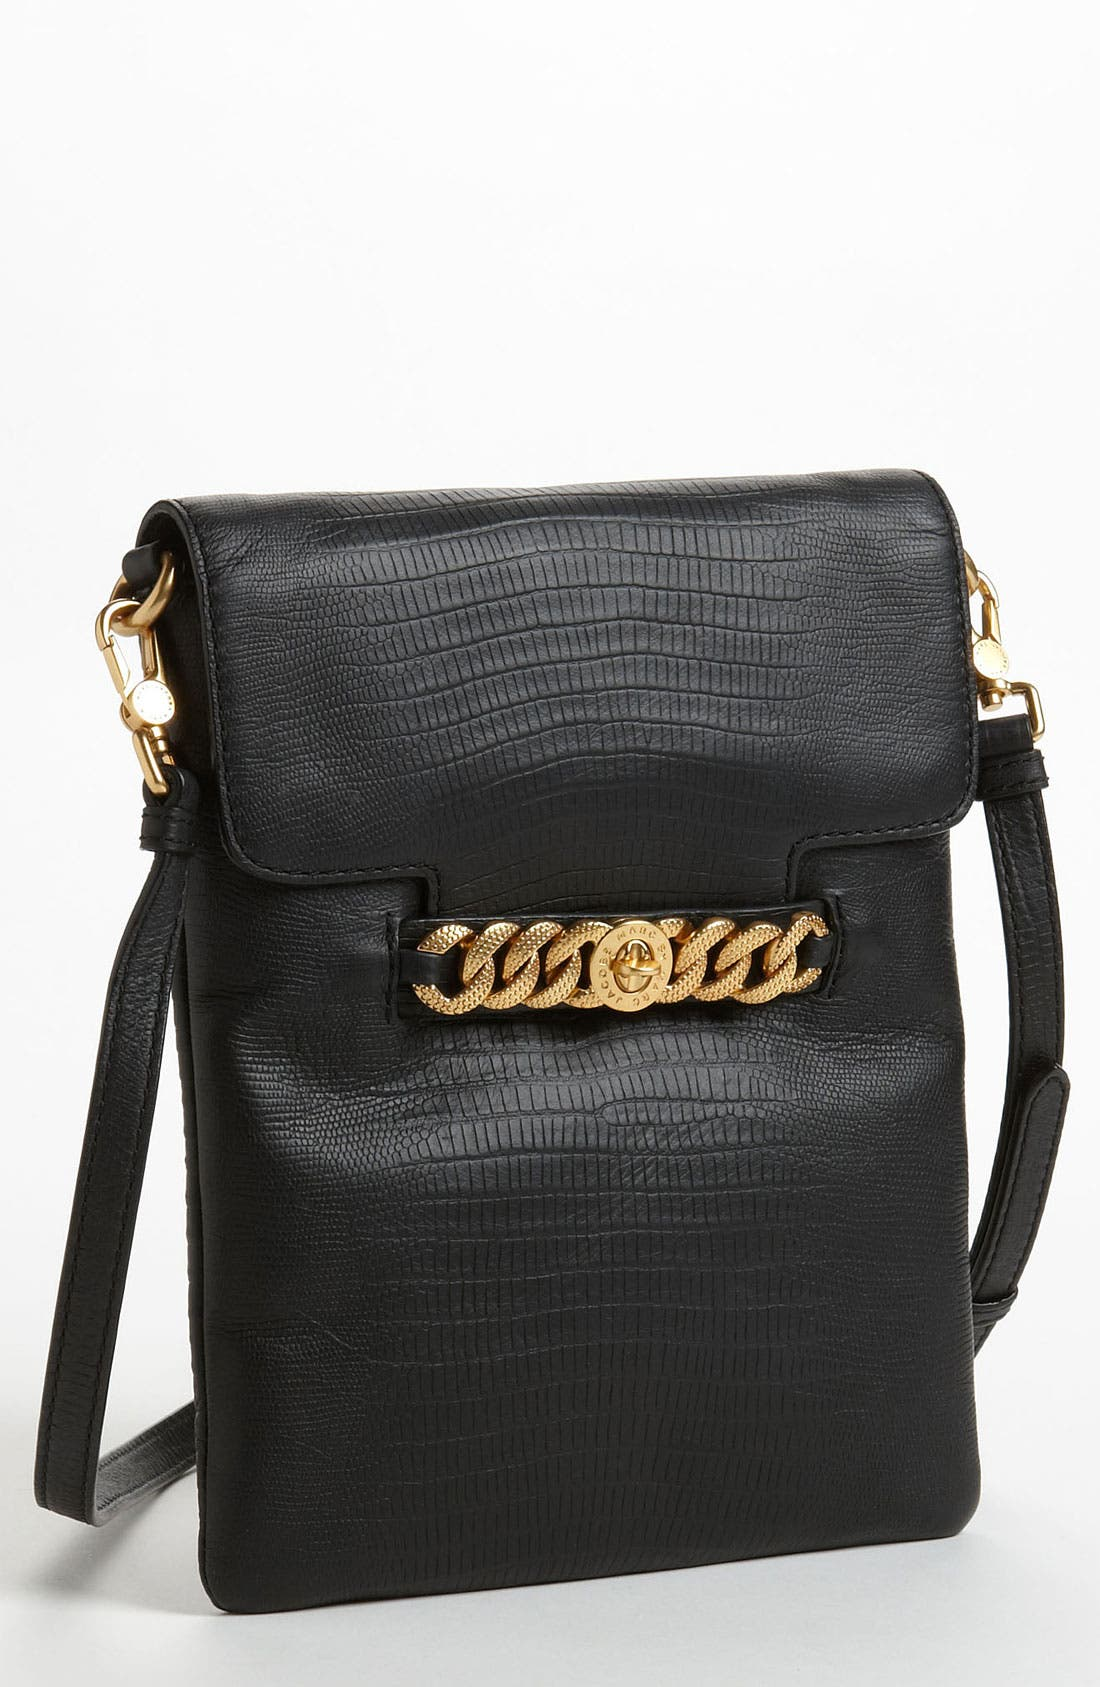 Main Image - MARC BY MARC JACOBS 'Katie Bracelet' Crossbody Tablet Case